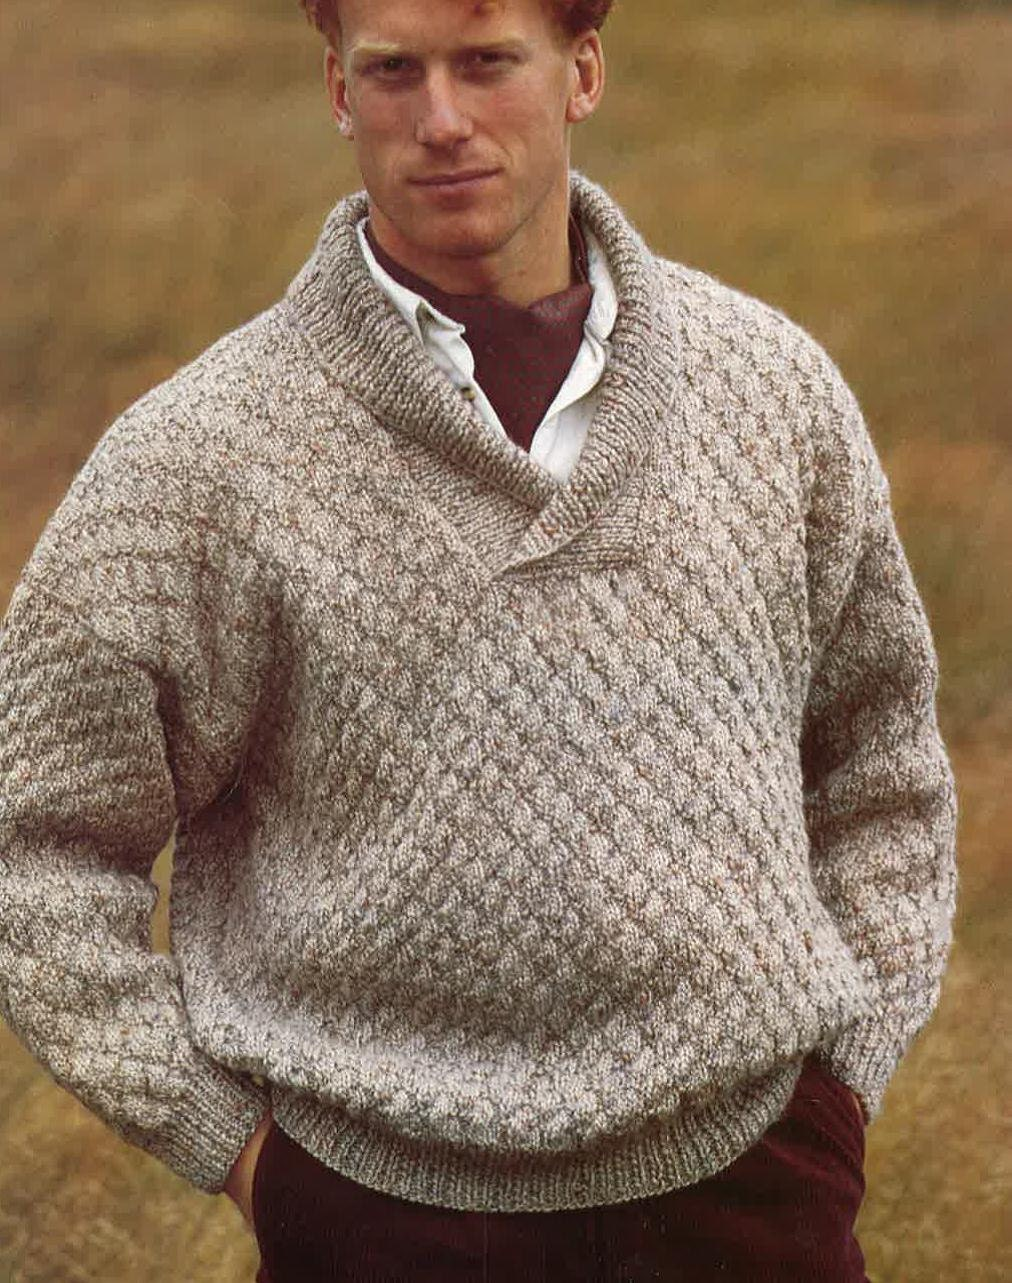 Knitting Patterns For Mens Half Sweaters : Mens Sweater Knitting Pattern PDF No.0338 From by TimelessOne